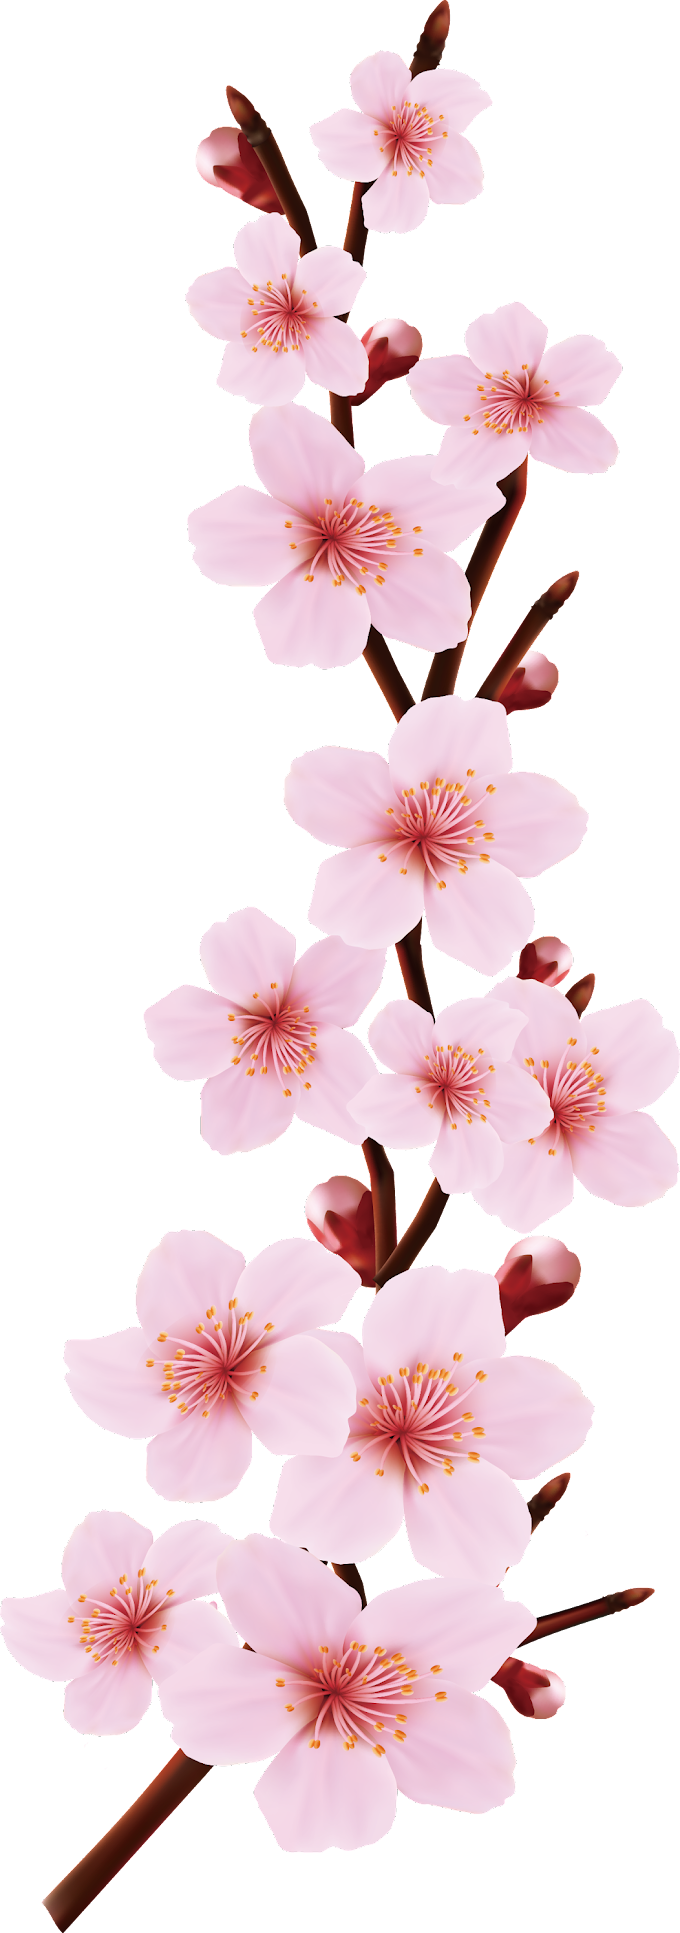 Pink flowers Blossom Drawing, Cherry design, flower Arranging, branch, happy Birthday Vector Images png free png download